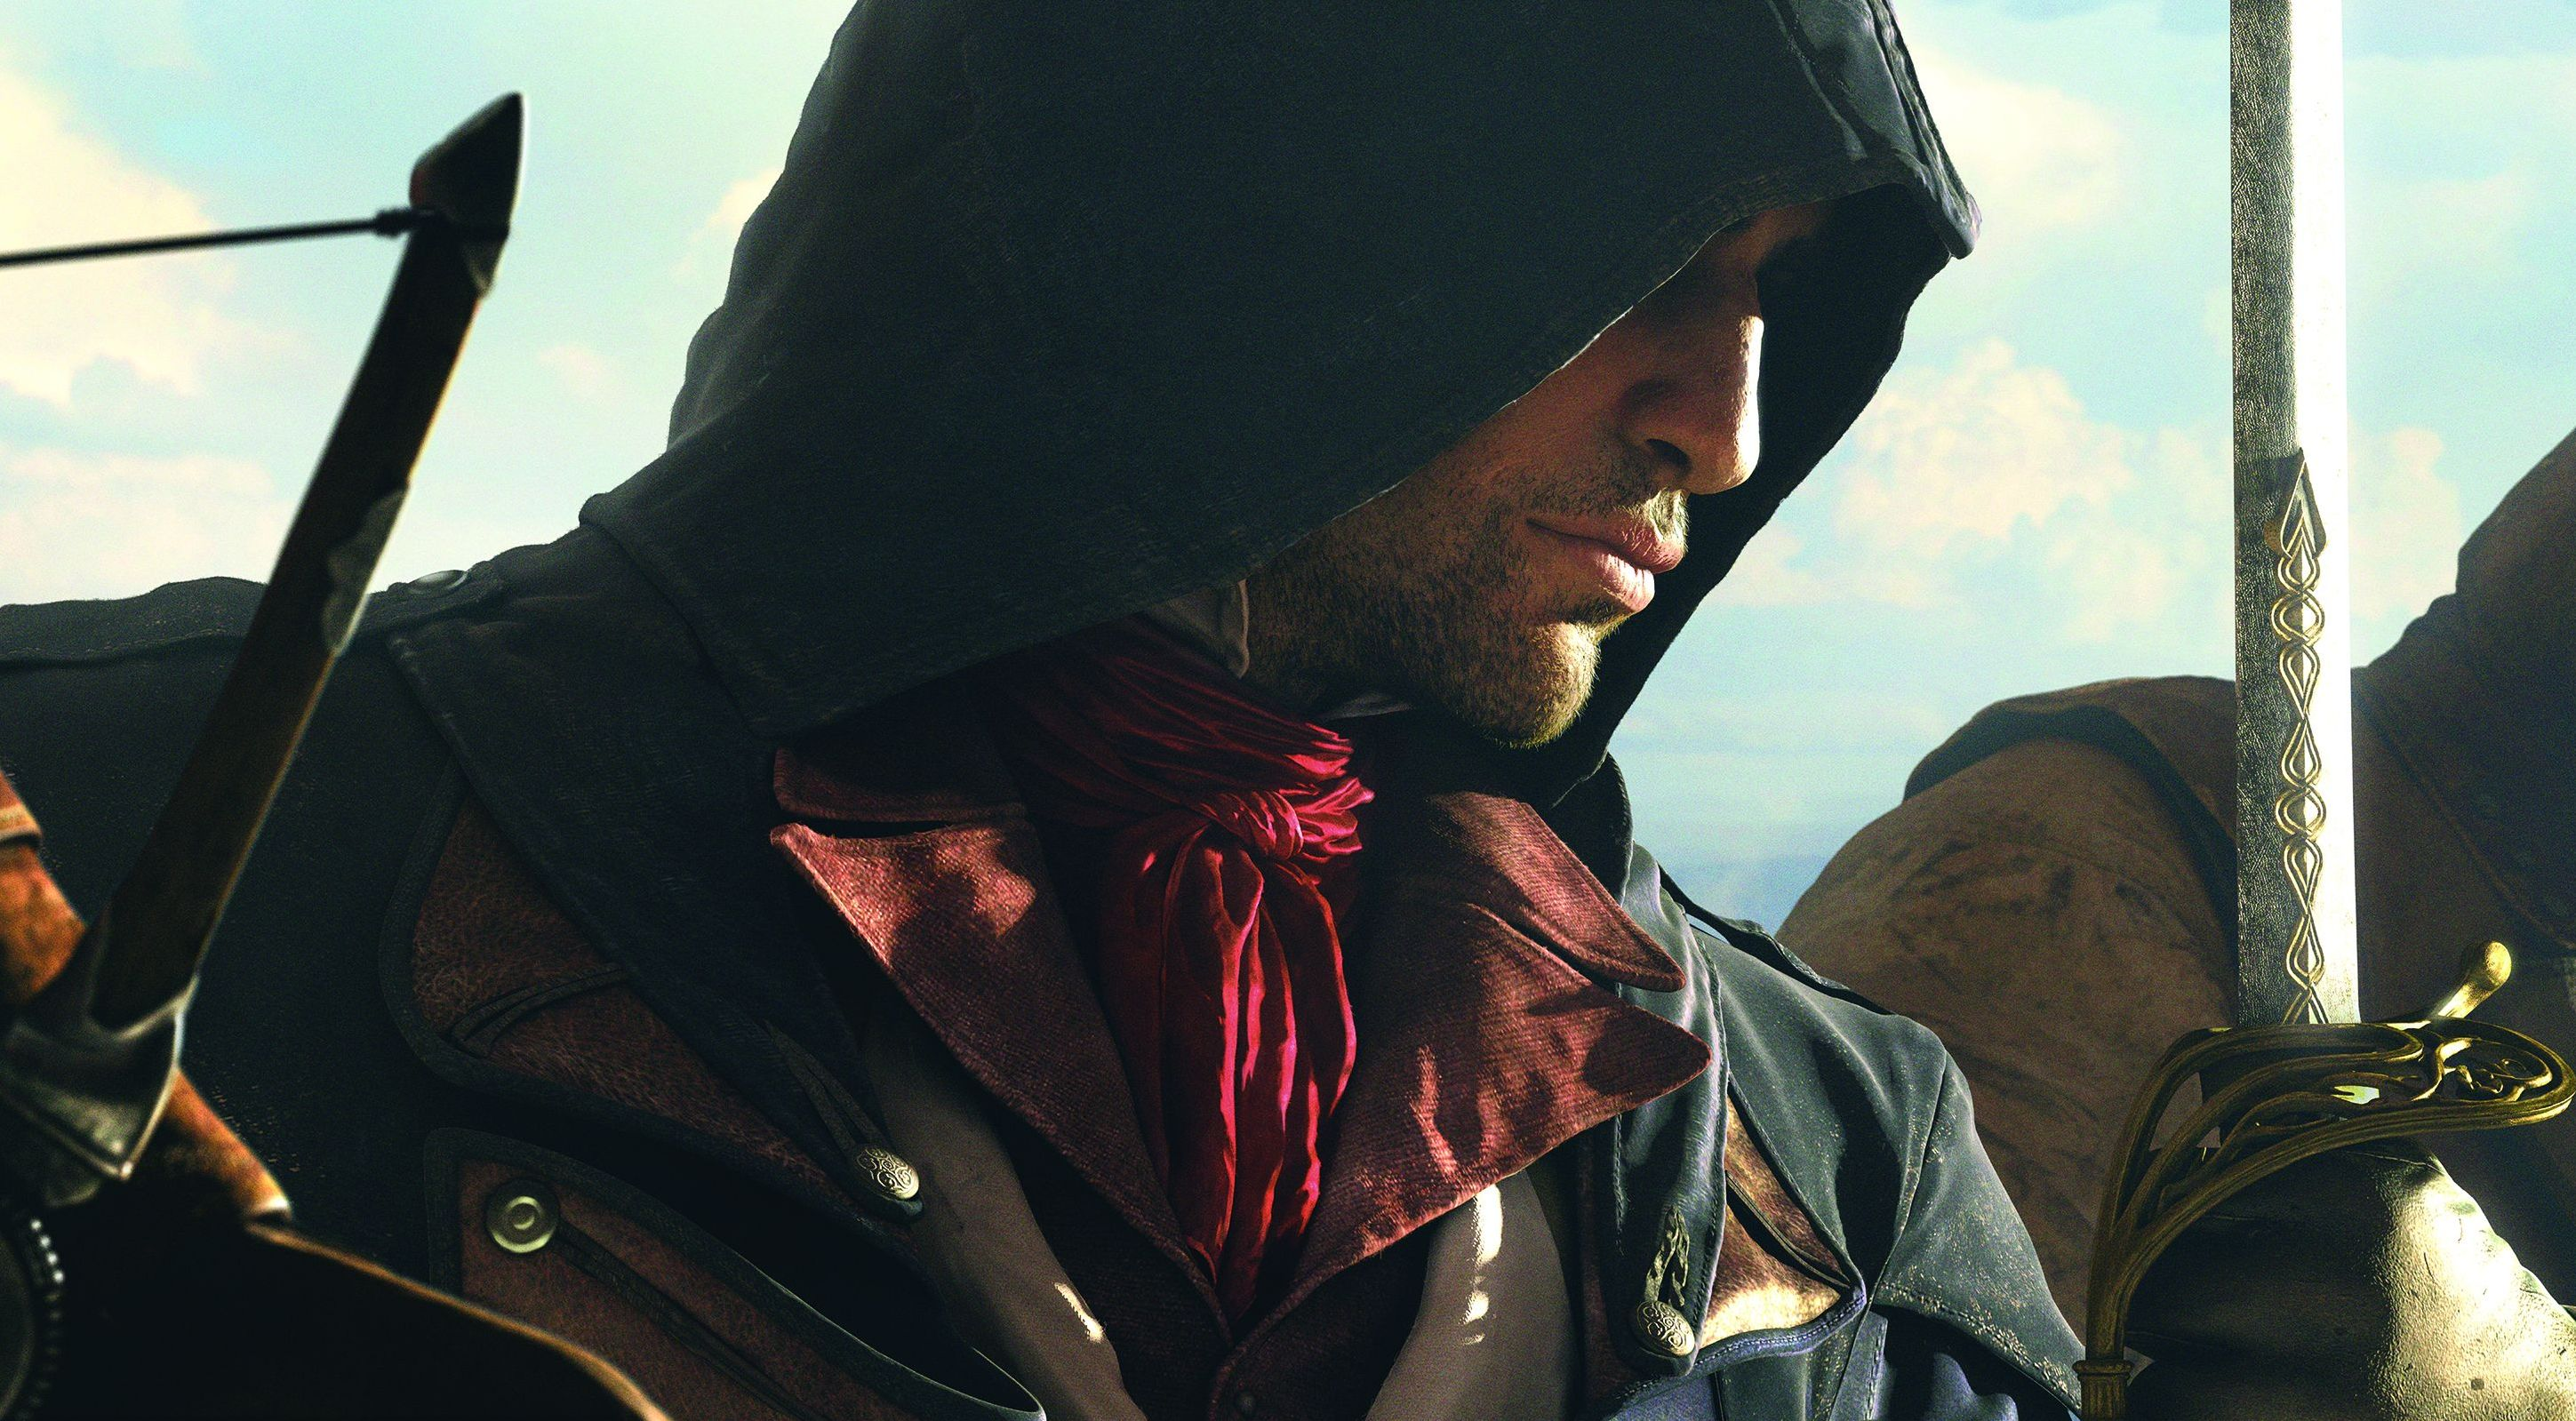 Get ready for Assassin's Creed Unity with this educational trailer